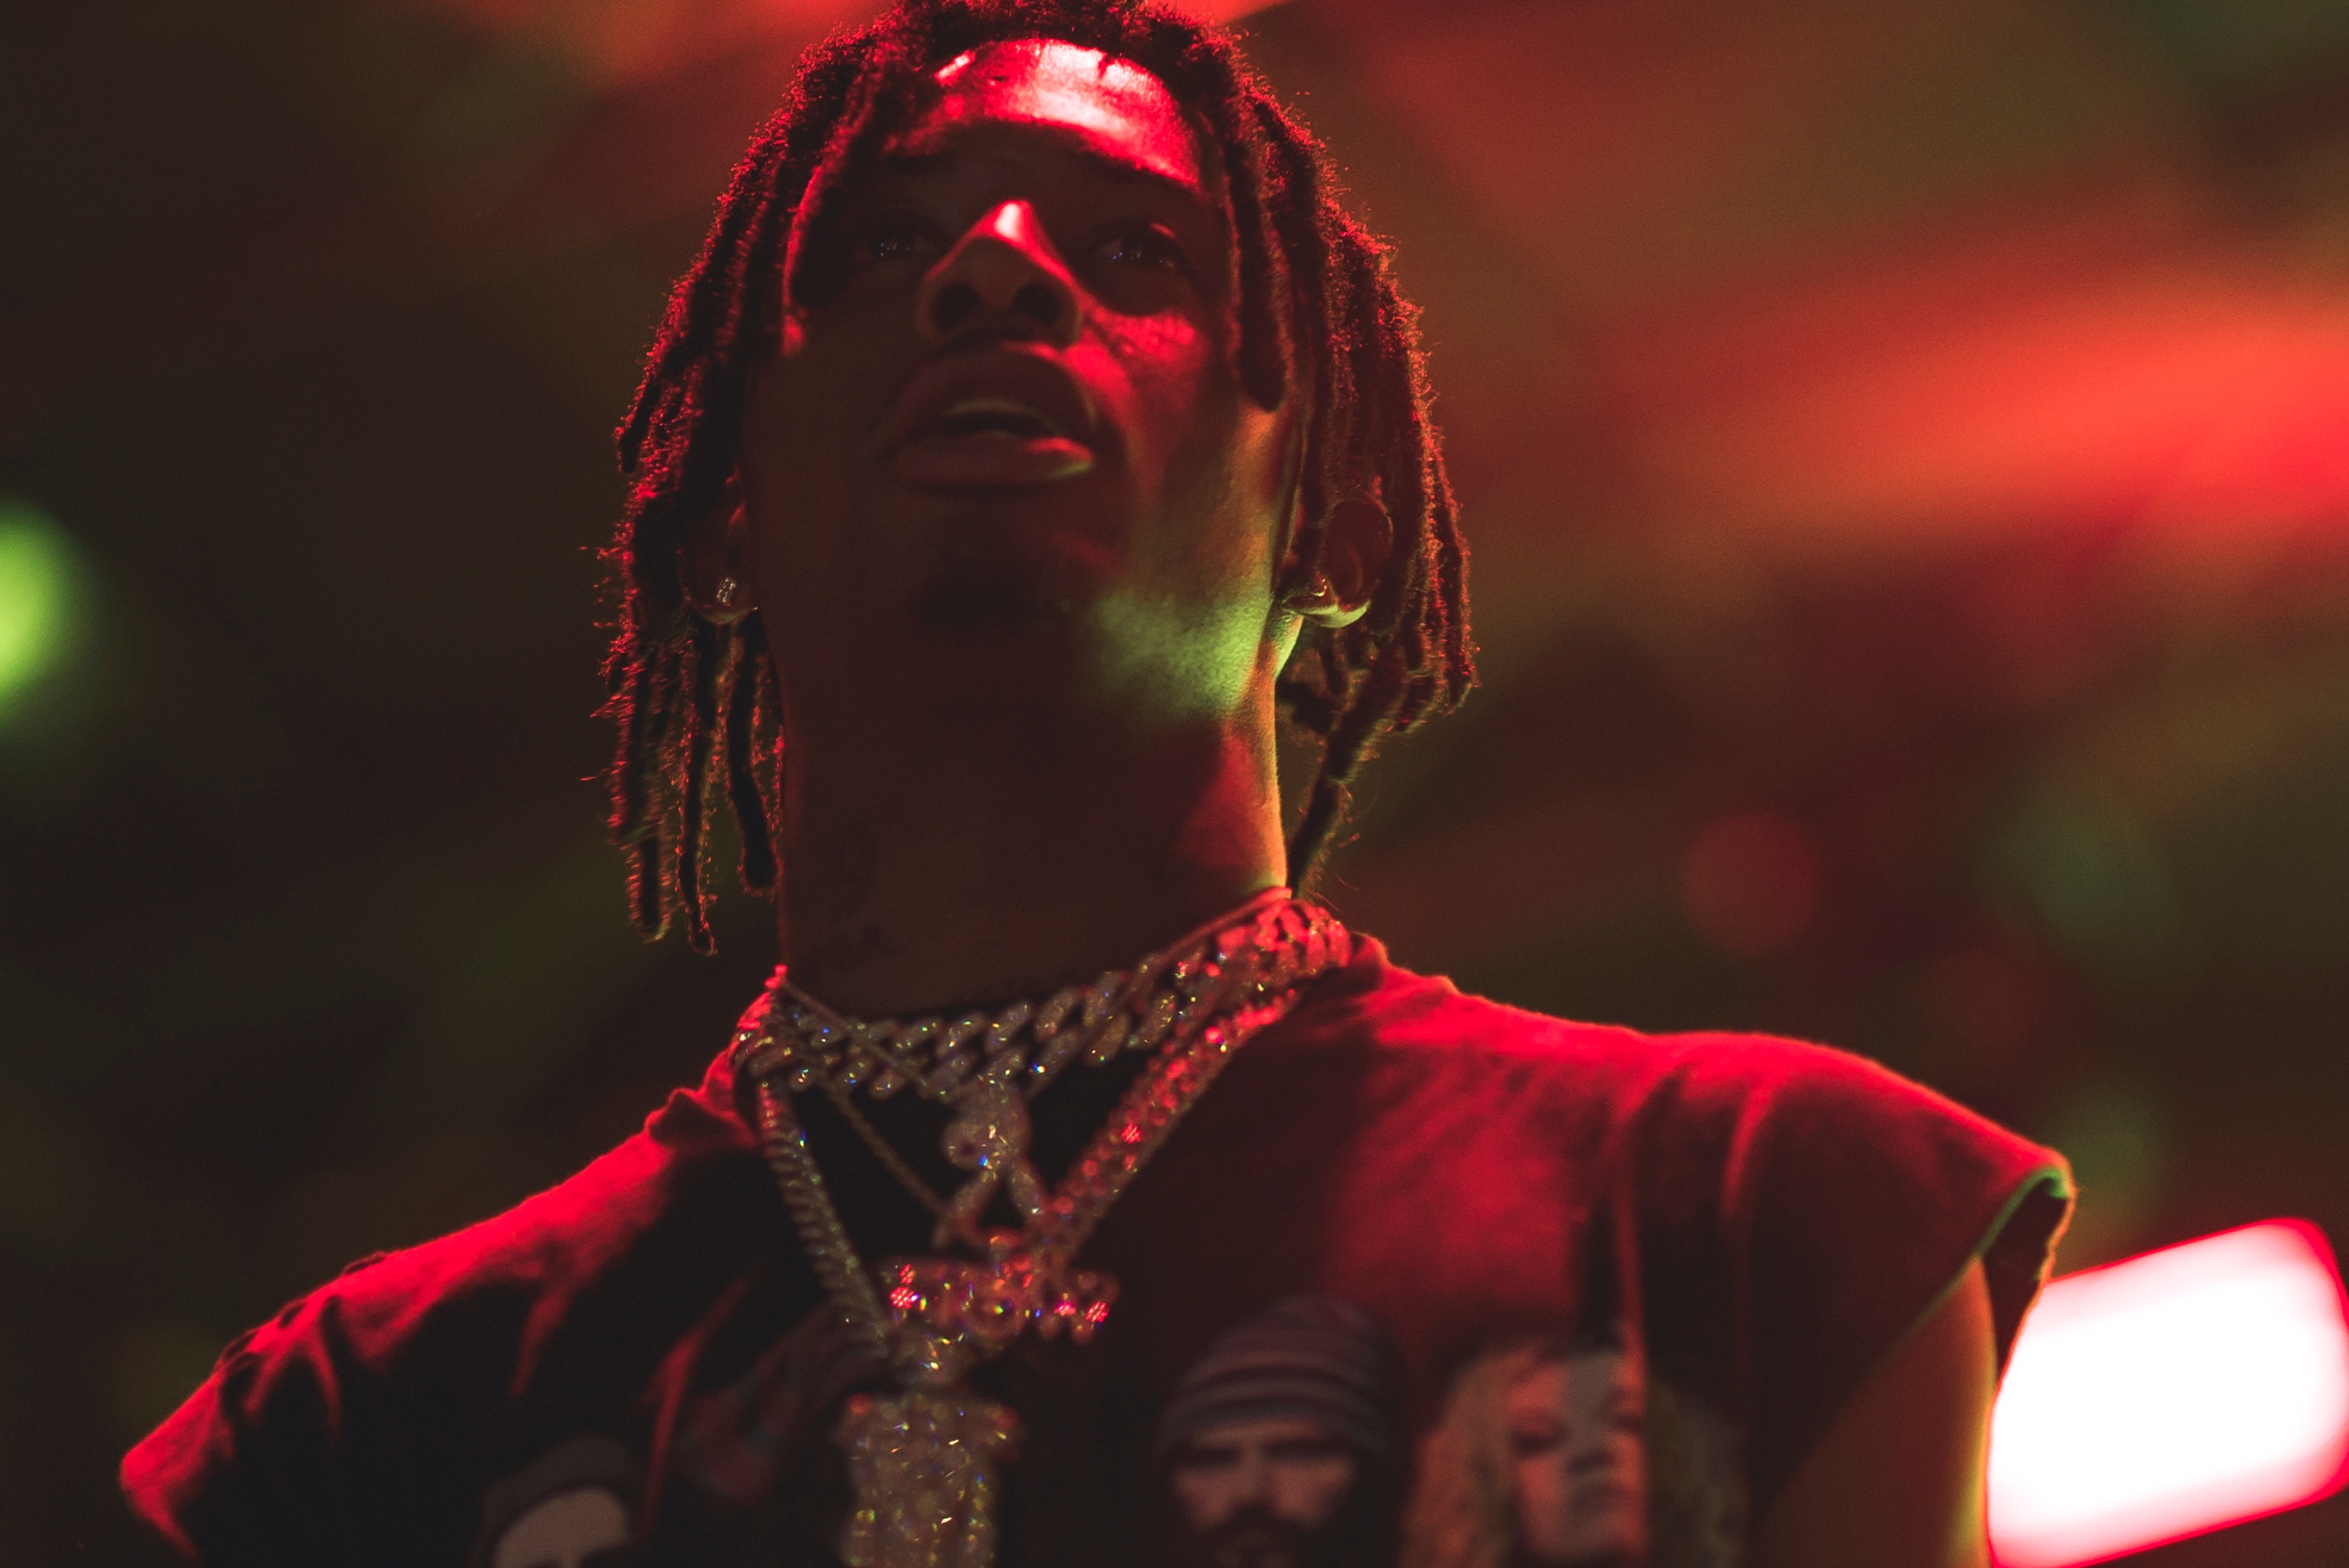 Fool's Gold DAY OFF ATL: DJ Drama and Don Cannon Bring Out Playboi Carti!